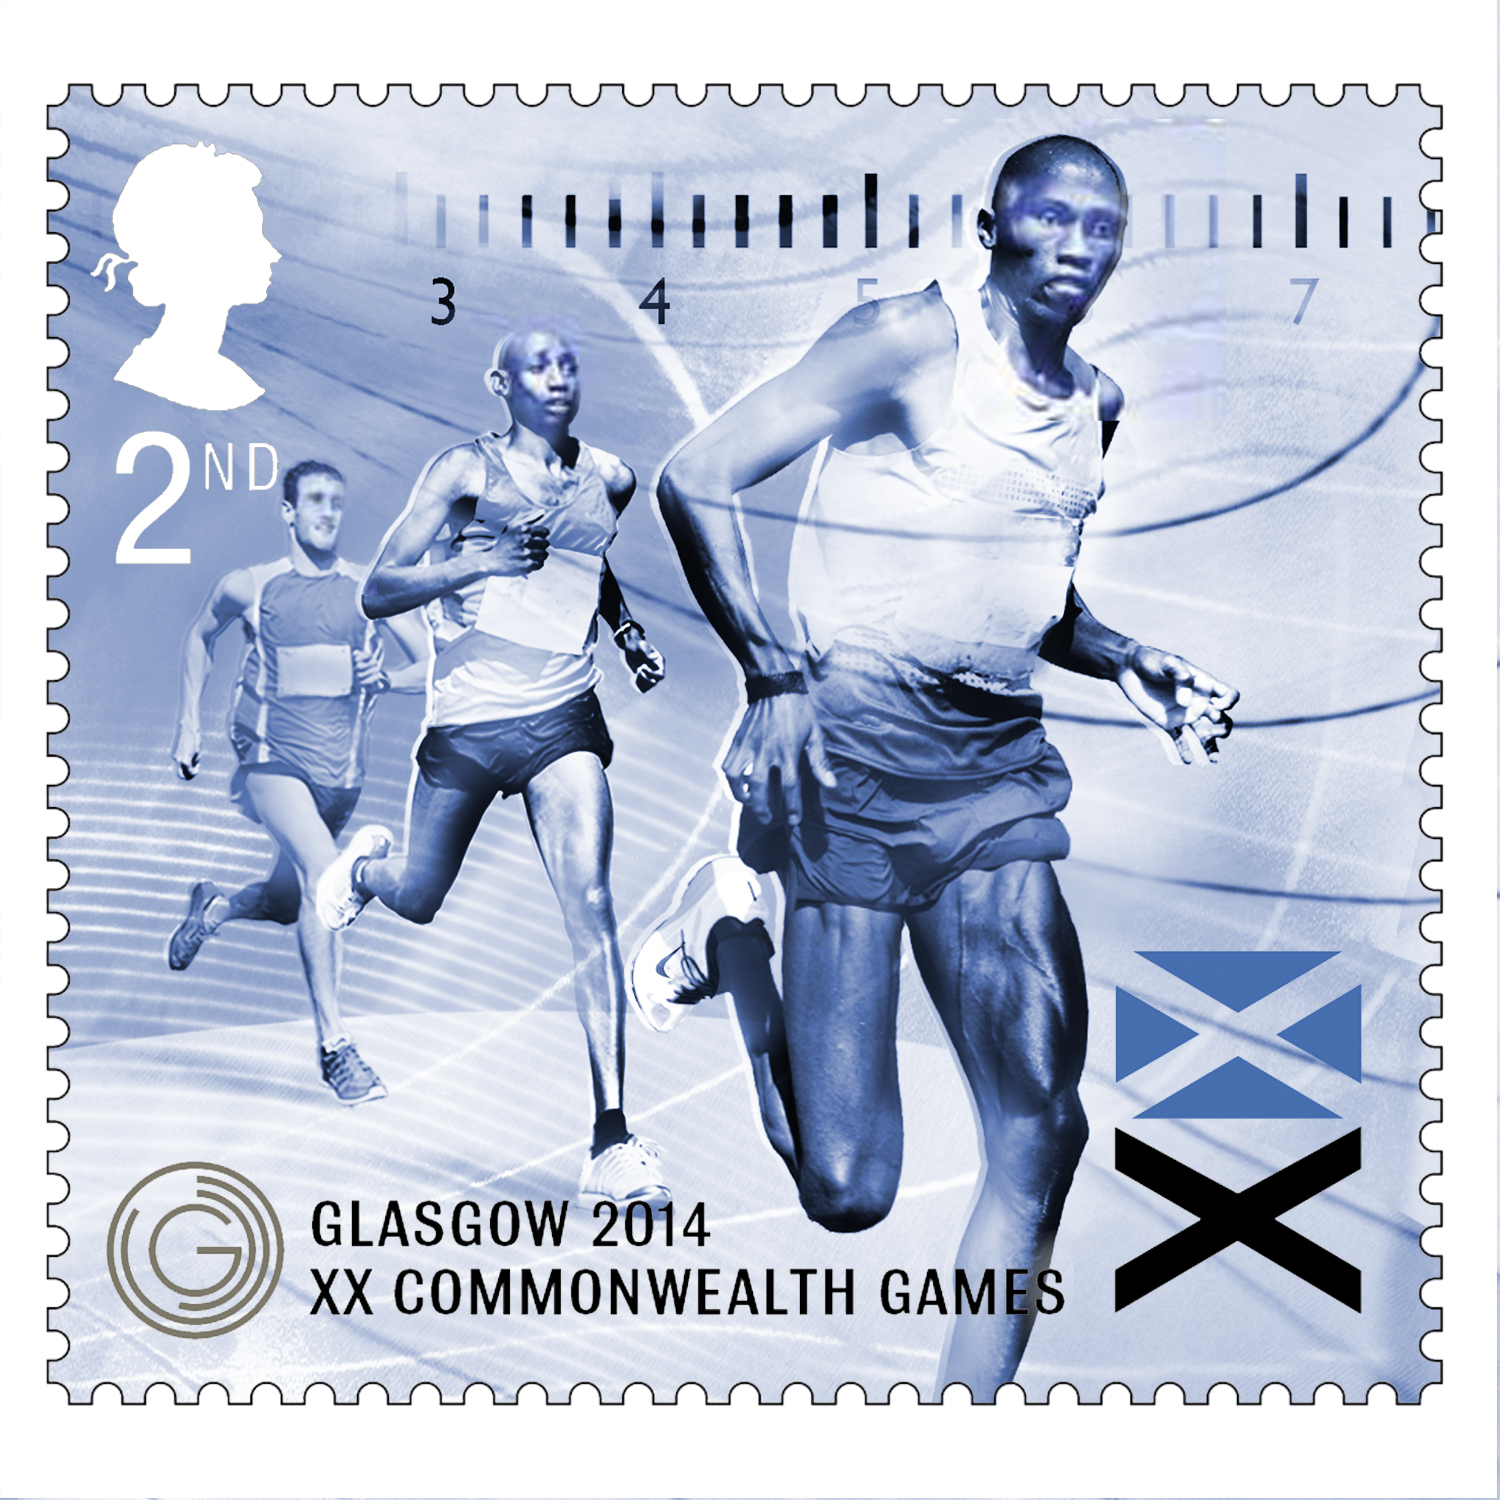 Marathon Royal Mail Stamps